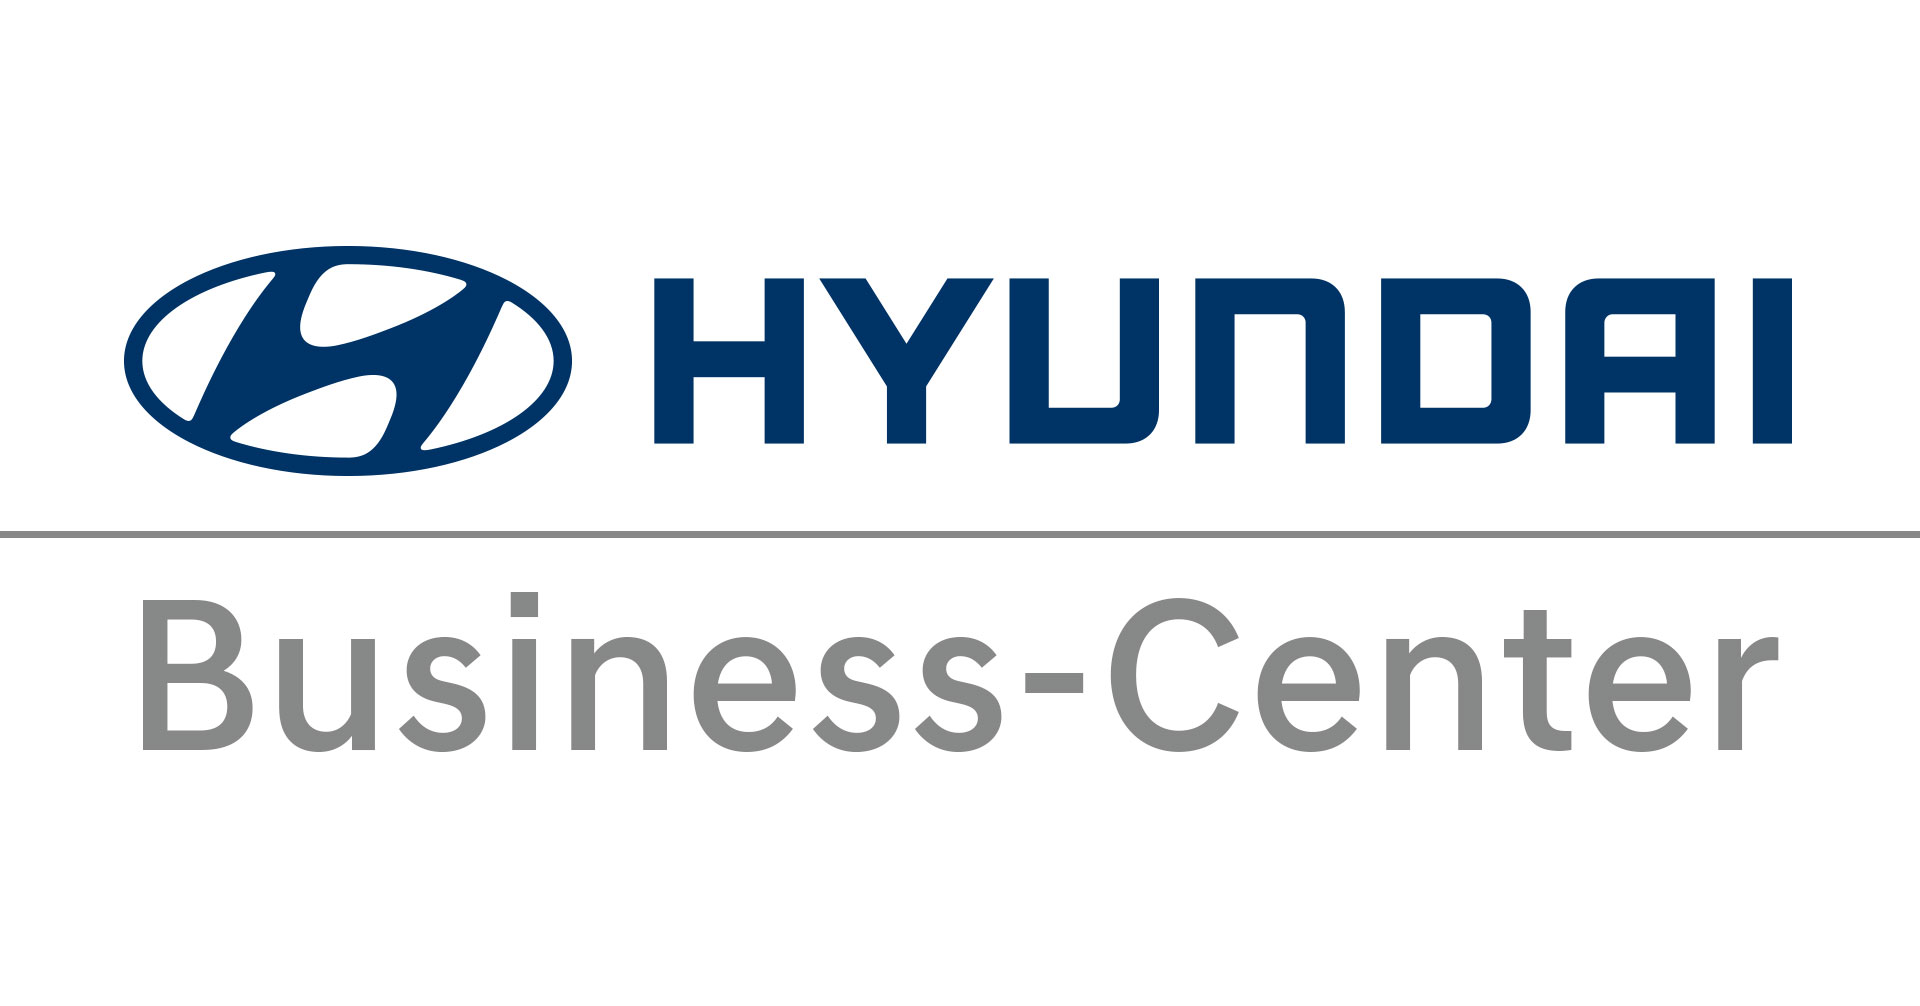 Hyundai fleet business center